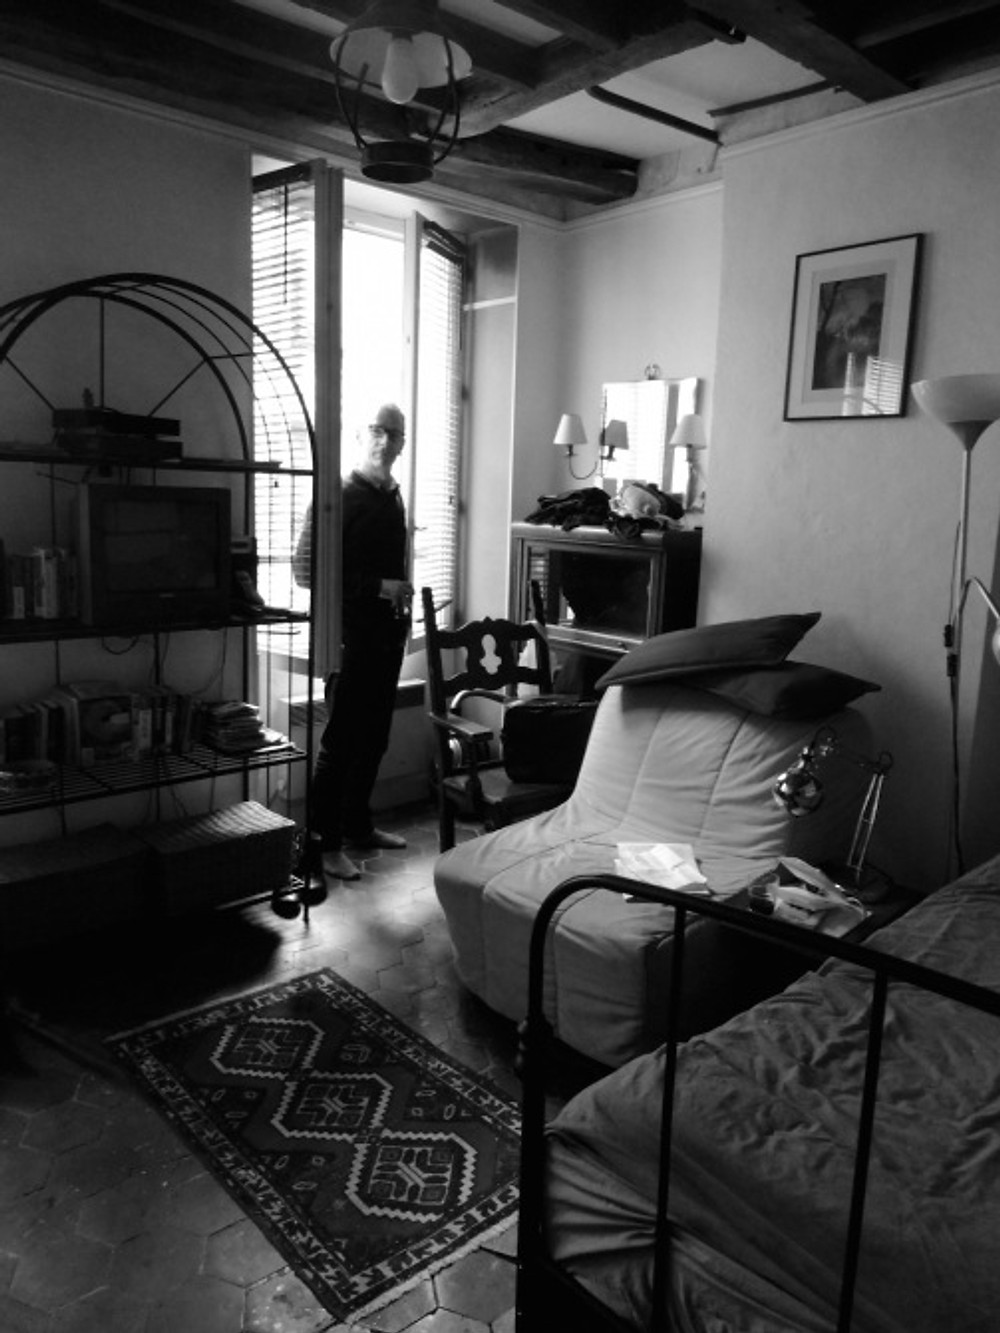 Our tiny place in Montmartre. Cute but with an uncomfortable bed, and shower reminiscent of an upright coffin.